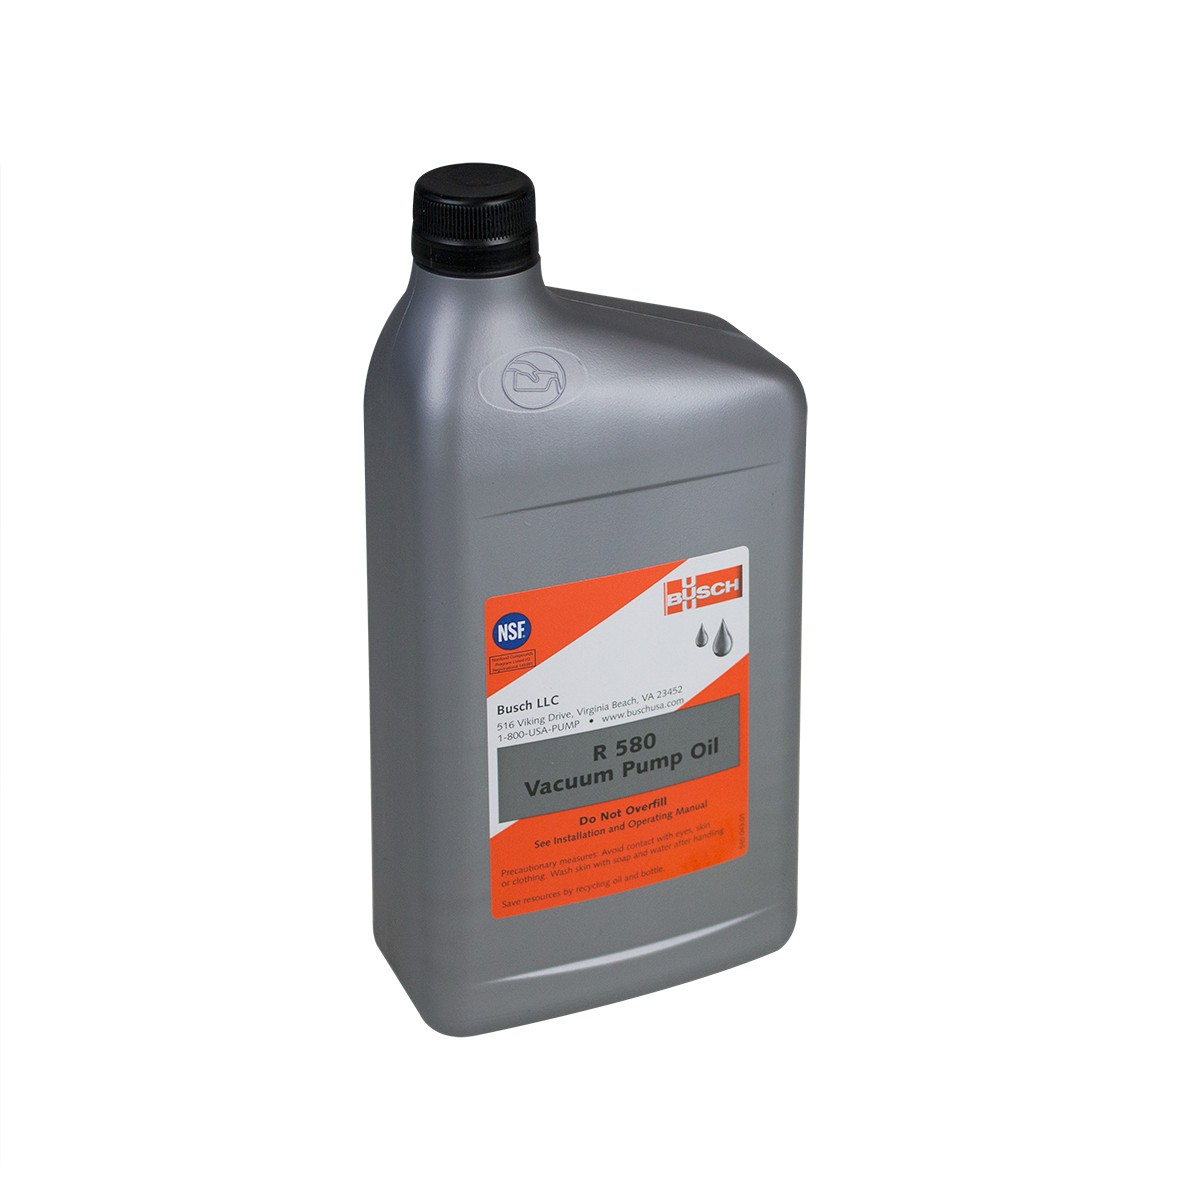 Oil 15W Non-Detergent (R580) for use in the Ultravac 225/250